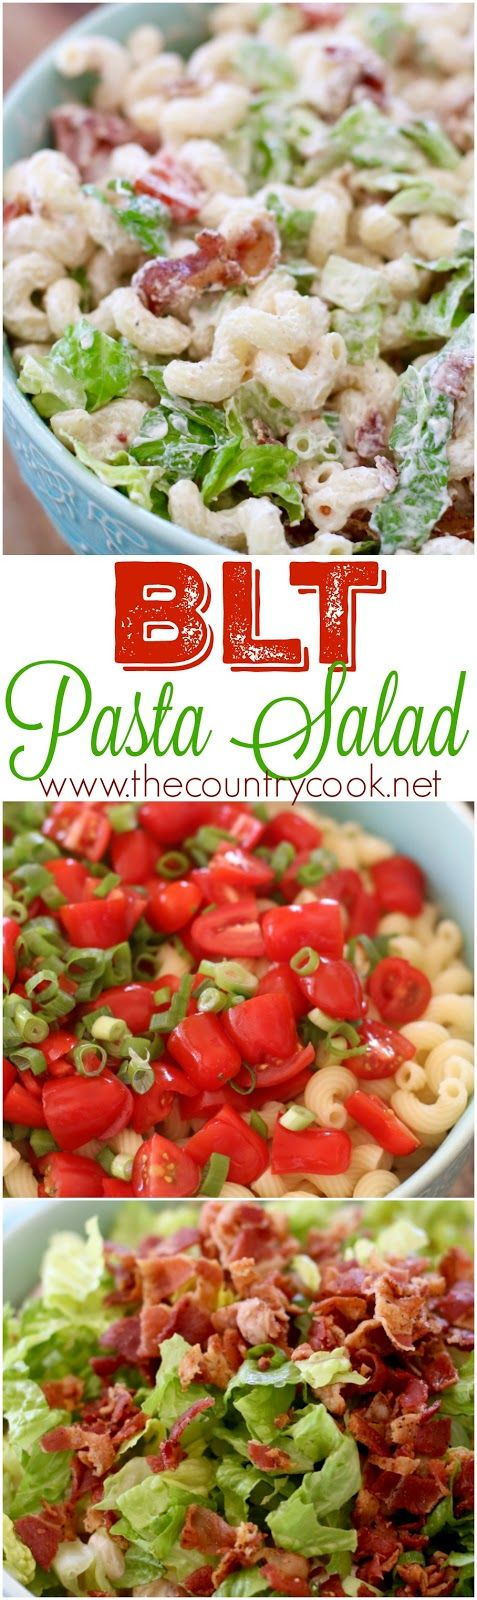 BLT Pasta Salad Recipe via The Country Cook. - Corkscrew pasta with lots of bacon and tomatoes and a yummy, creamy dressing. Perfect for all those Memorial Day and Fourth of July barbecues and potlucks! Easy Pasta Salad Recipes - The BEST Yummy Barbecue Side Dishes, Potluck Favorites and Summer Dinner Party Crowd Pleasers #pastasaladrecipes #pastasalads #pastasalad #easypastasalad #potluckrecipes #potluck #partyfood #4thofJuly #picnicfood #sidedishrecipes #easysidedishes #cookoutfood #barbecuefood #blockparty